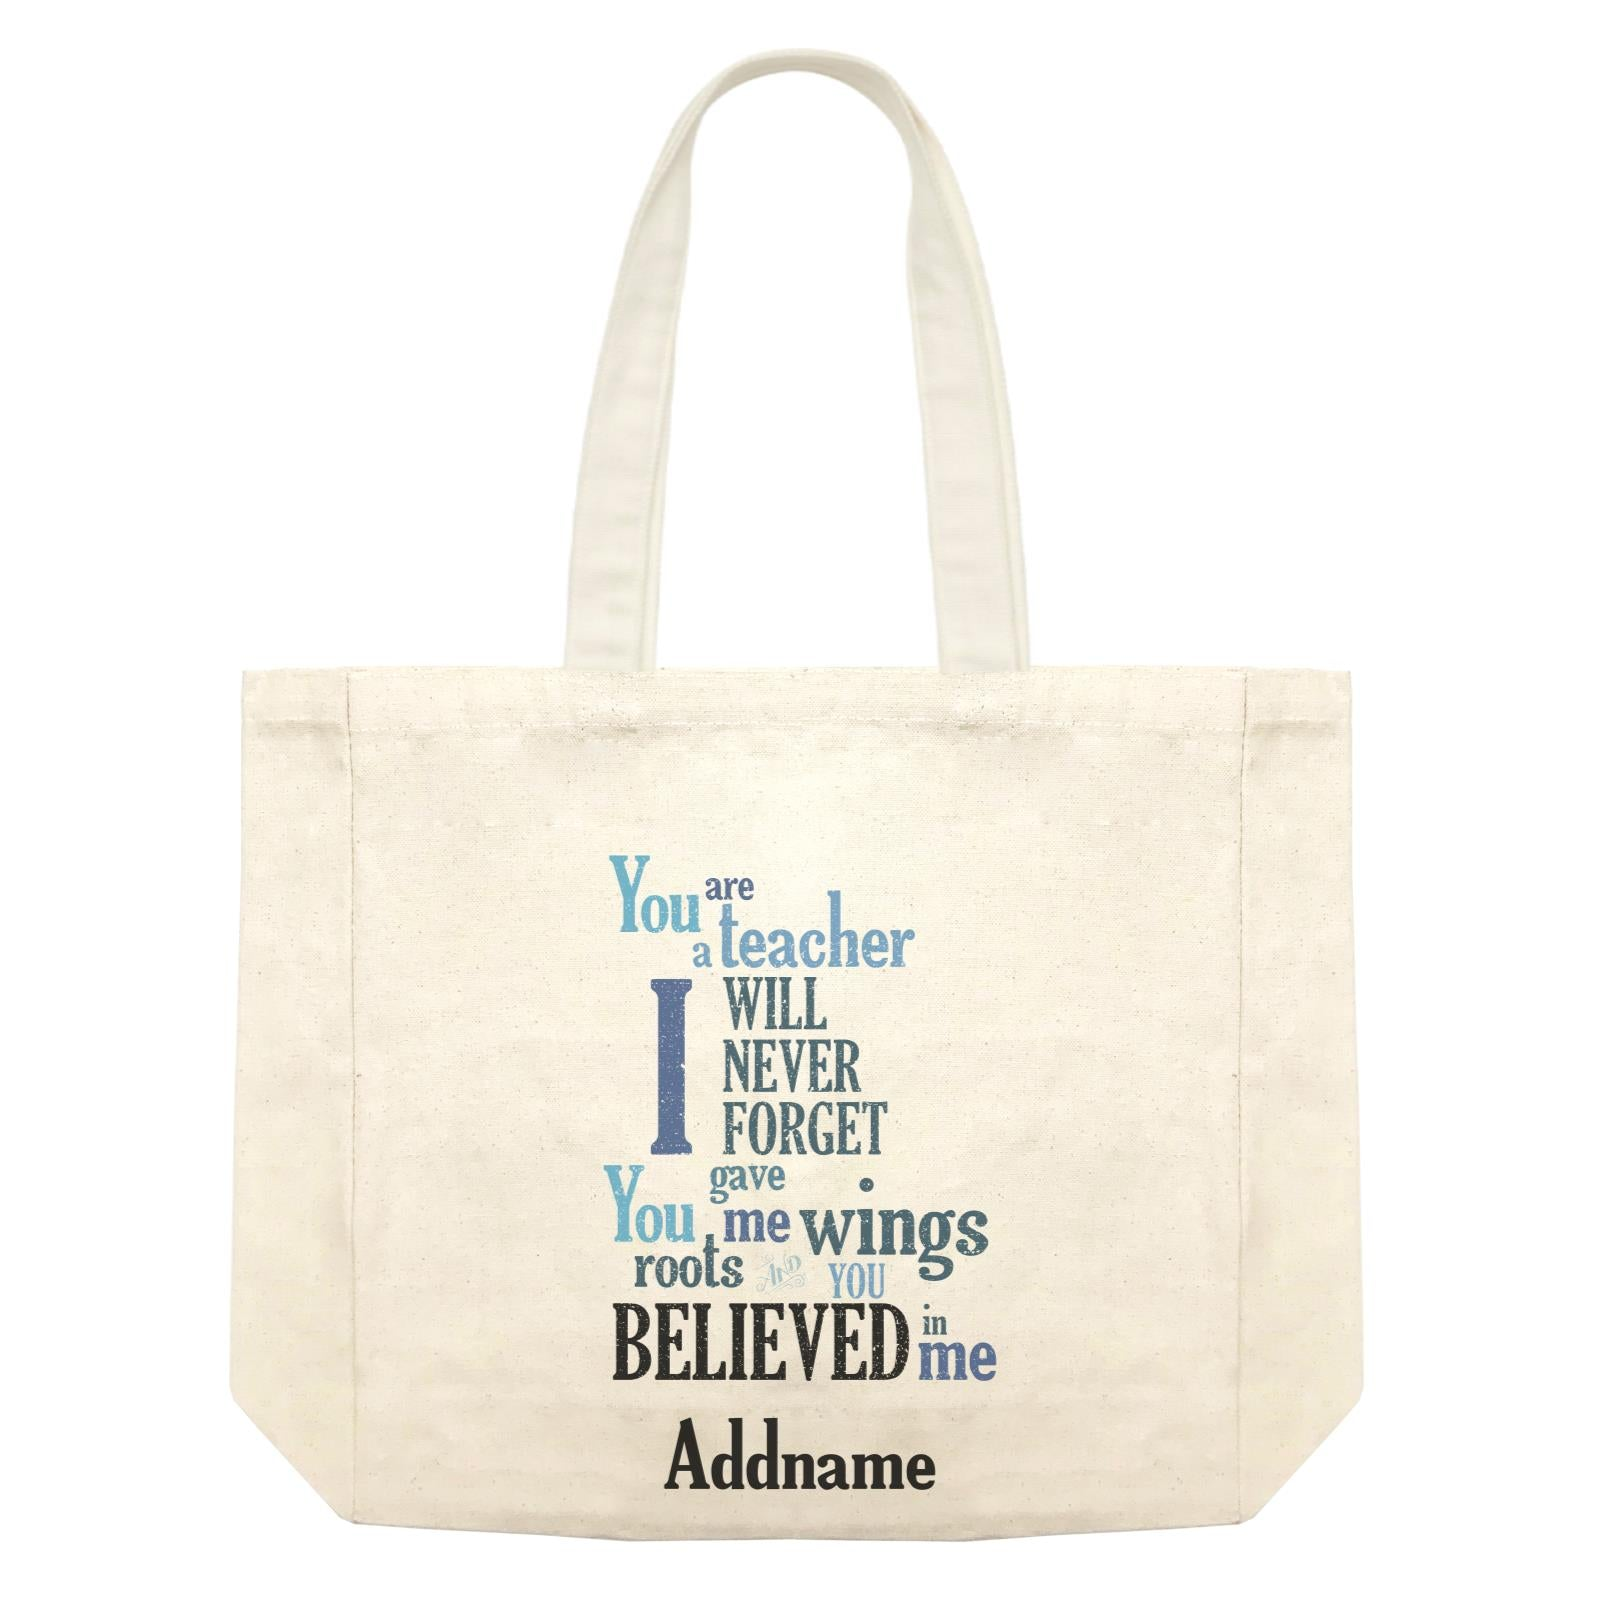 Super Teachers I Will Never Forget You Gave Me Wings Roots And You Believed In Me Addname Shopping Bag